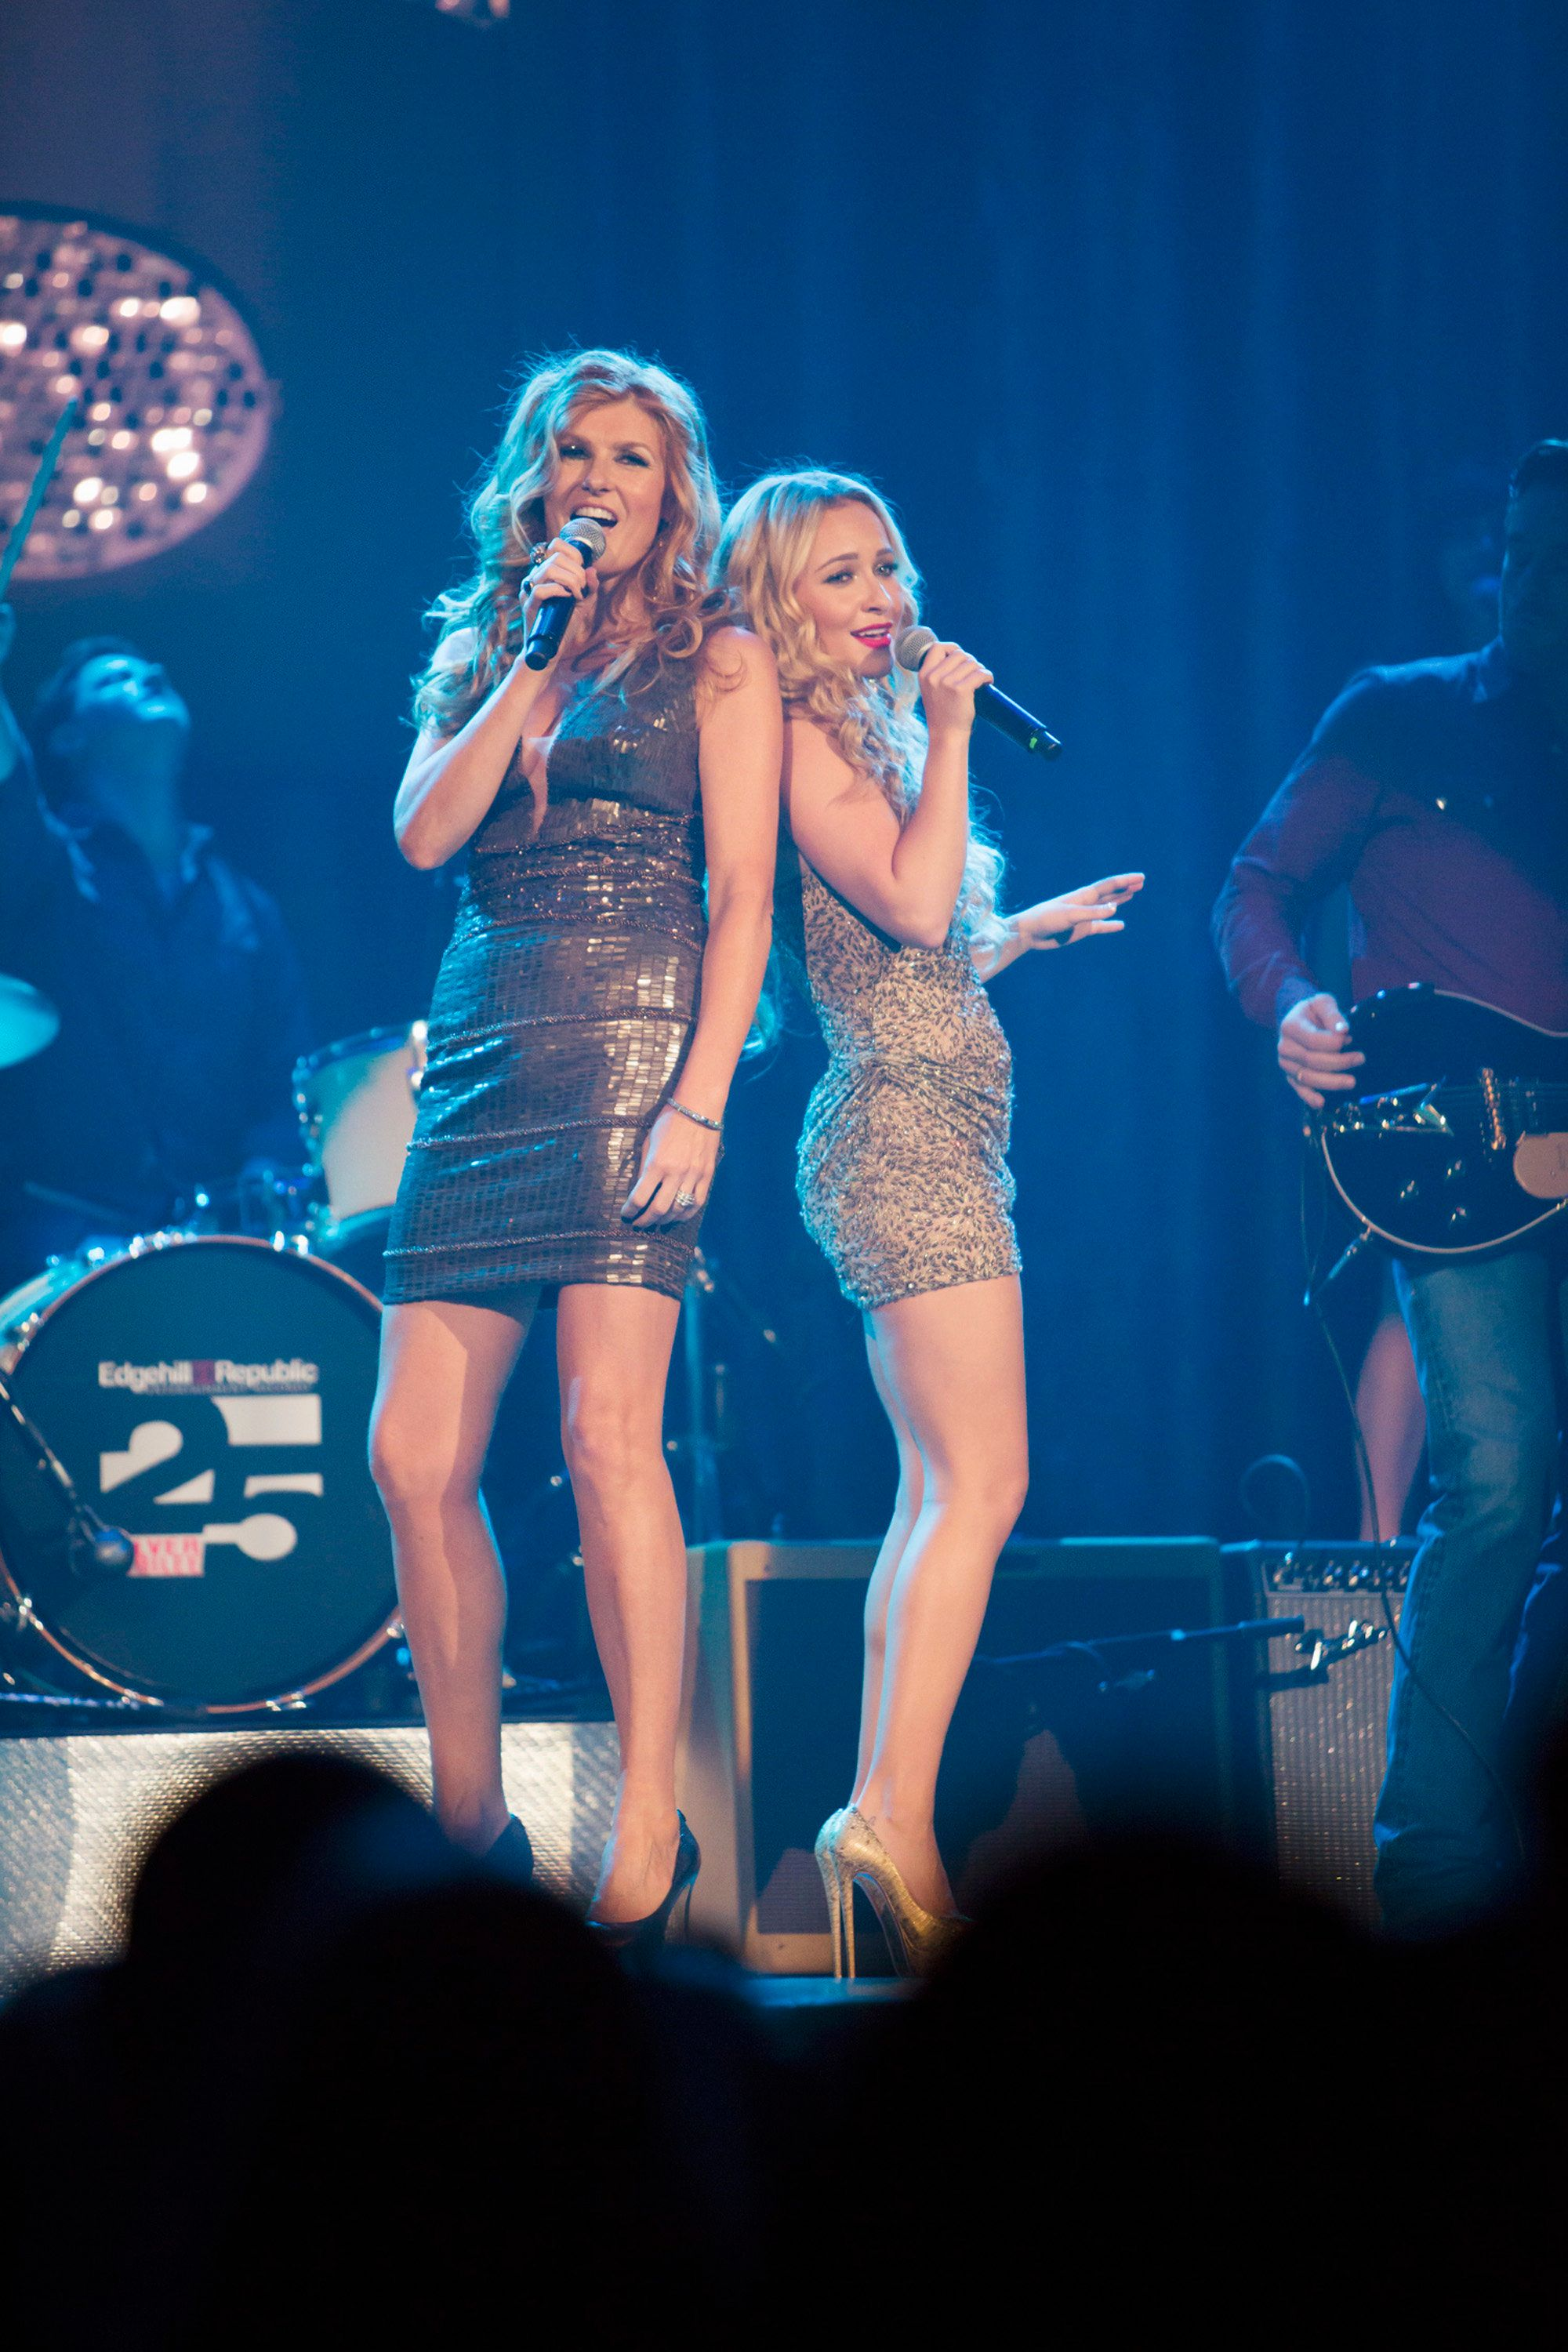 NASHVILLE - 'Lovesick Blues' - Marshall Evans continues to pressure Rayna and Juliette to collaborate at an event at the Ryman theater, Teddy is forced to reveal the truth to Rayna when Peggy's desperation hits its peak, and in an effort to move past her failed relationship to Avery, Scarlett finds herself closer to Gunnar, on 'Nashville,' WEDNESDAY, NOVEMBER 28 (10:00-11:00 p.m. ET) on the ABC Television Network. (Photo by Chris Hollo/ABC via Getty Images) CONNIE BRITTON, HAYDEN PANETTIERE